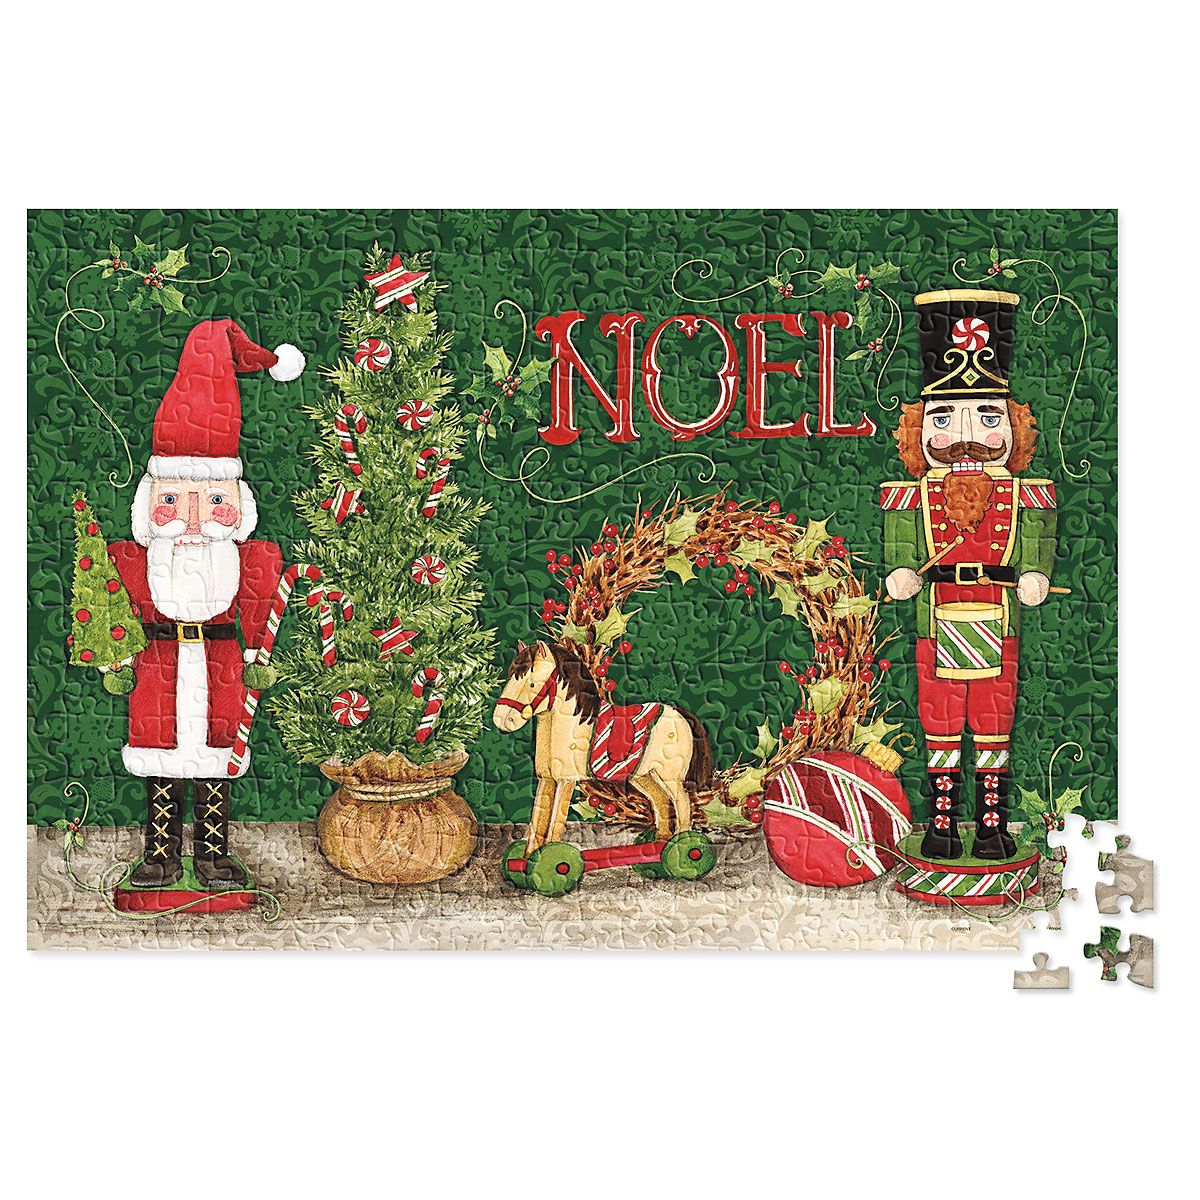 Nutcracker Suite Puzzle